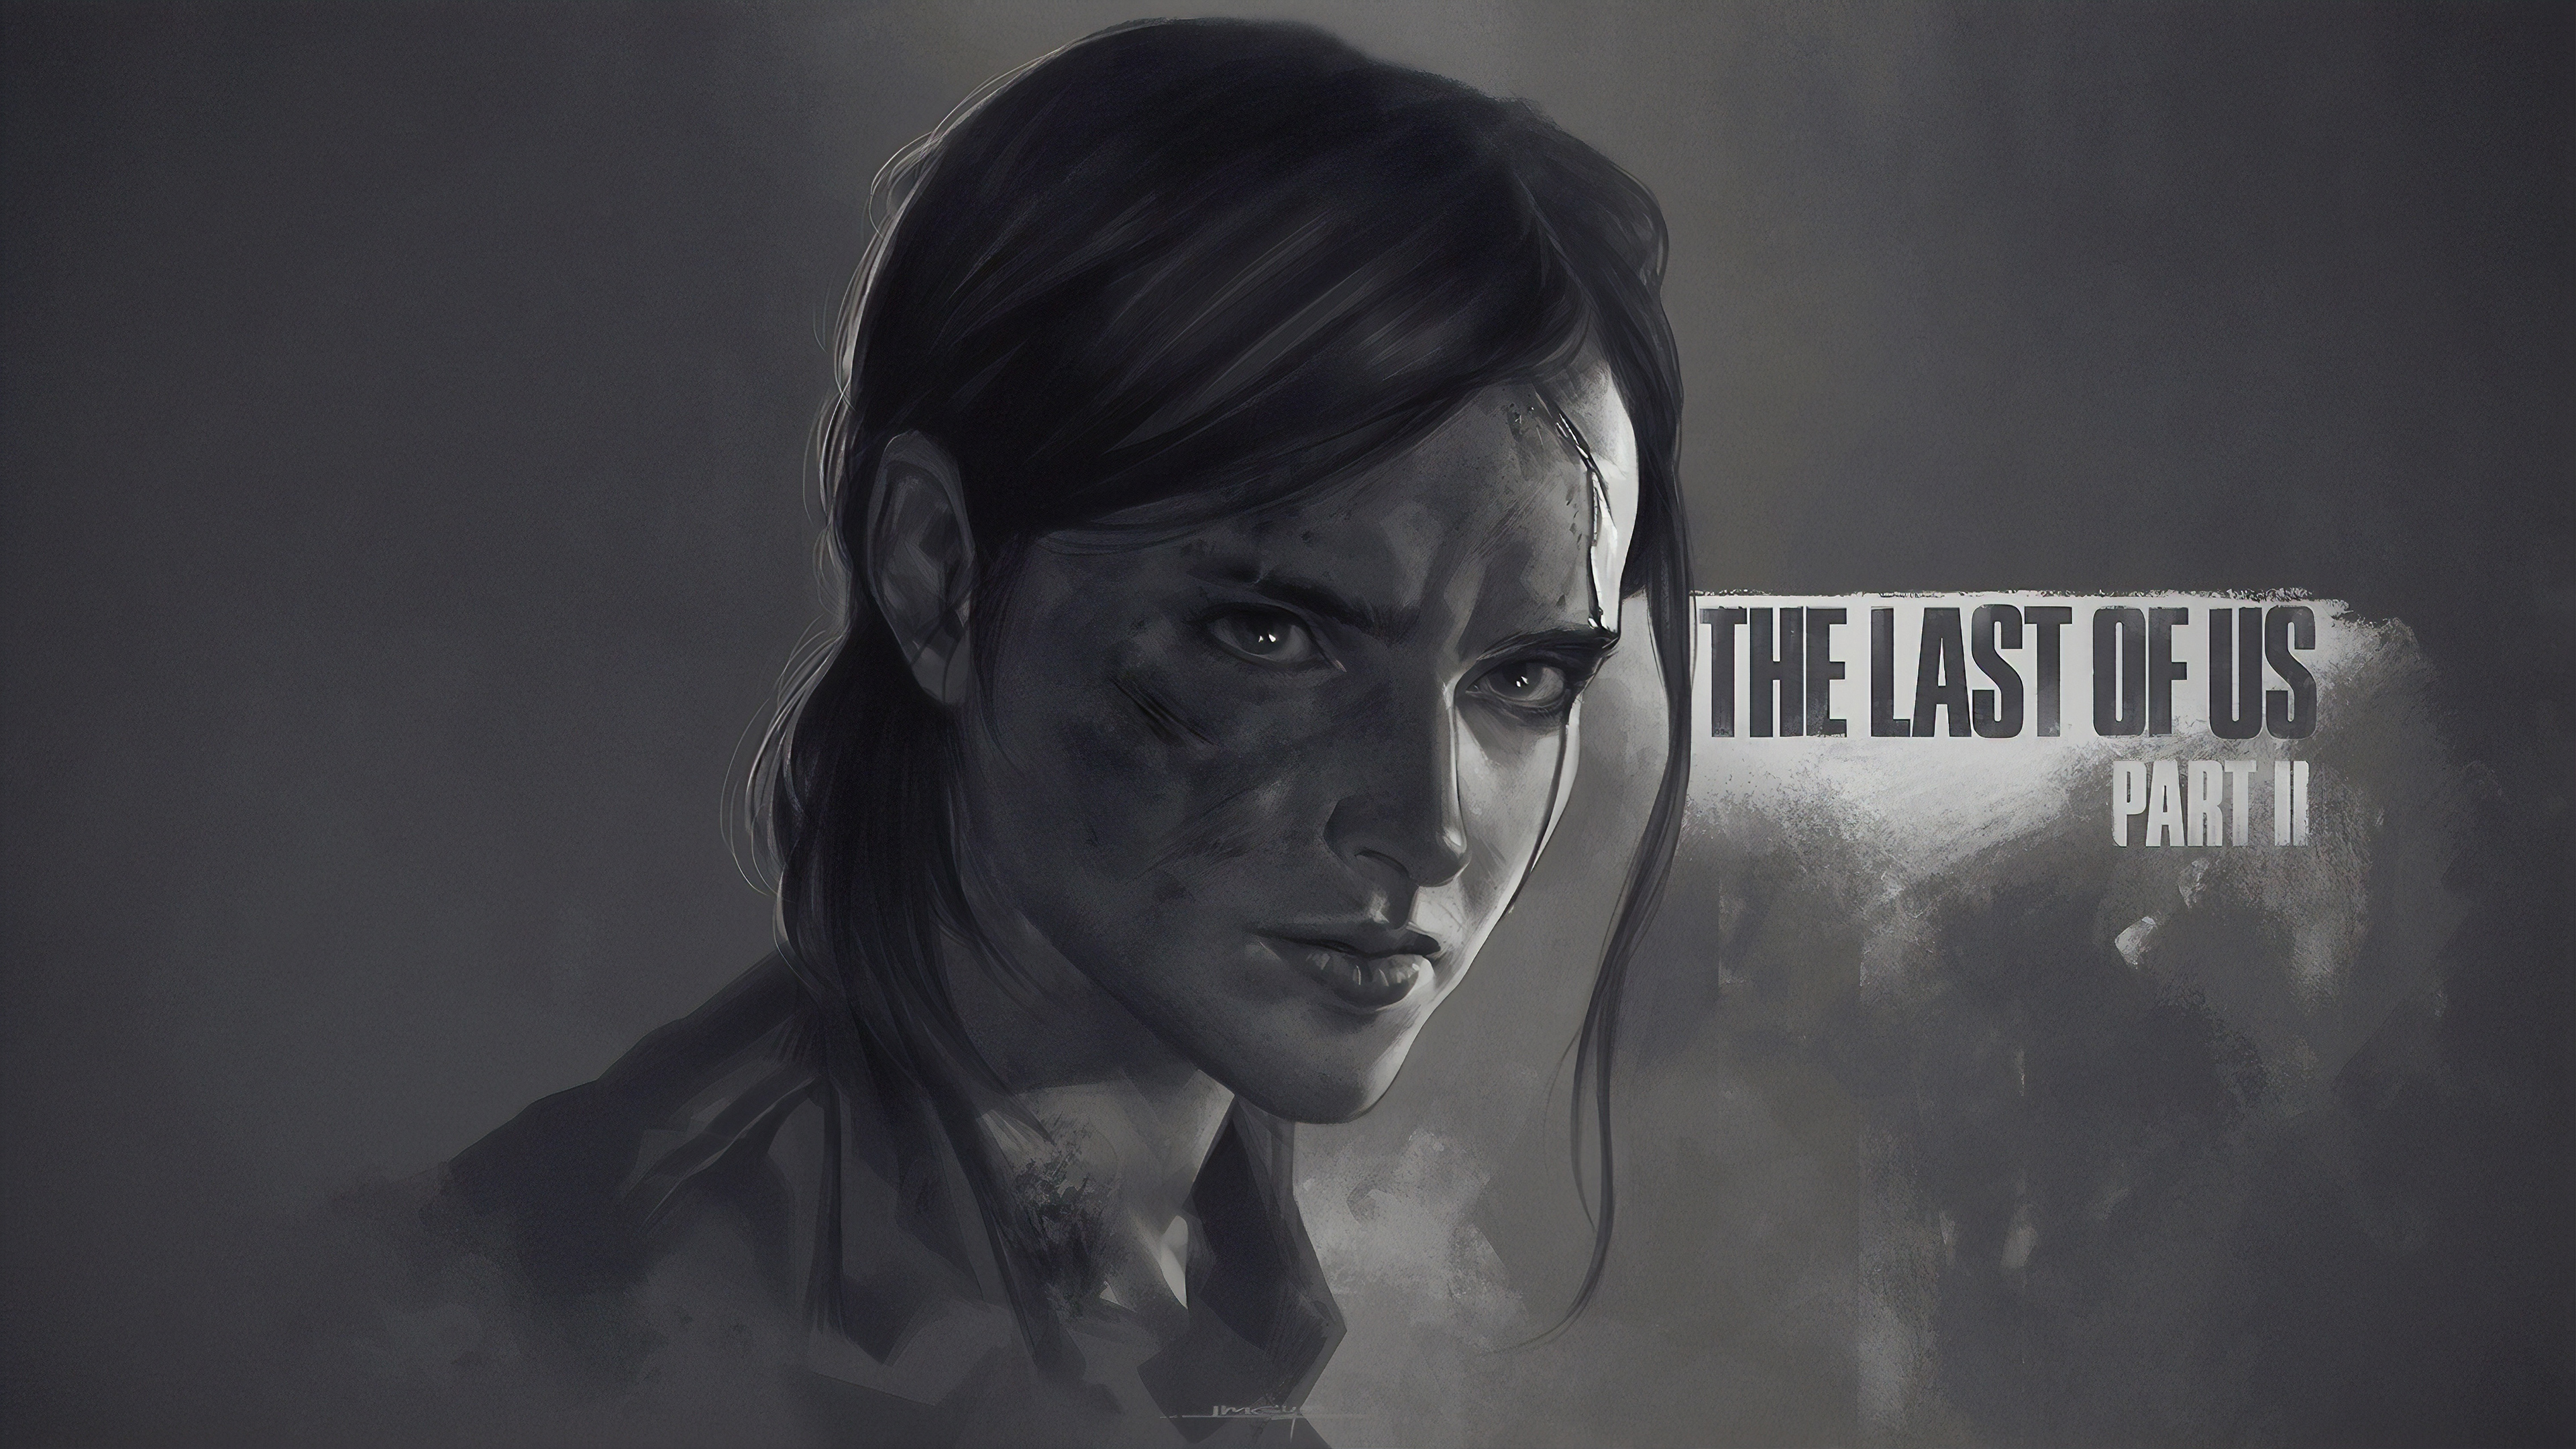 Wallpaper 4k Ellie The Last Of Us Part 2 Monochrome Poster